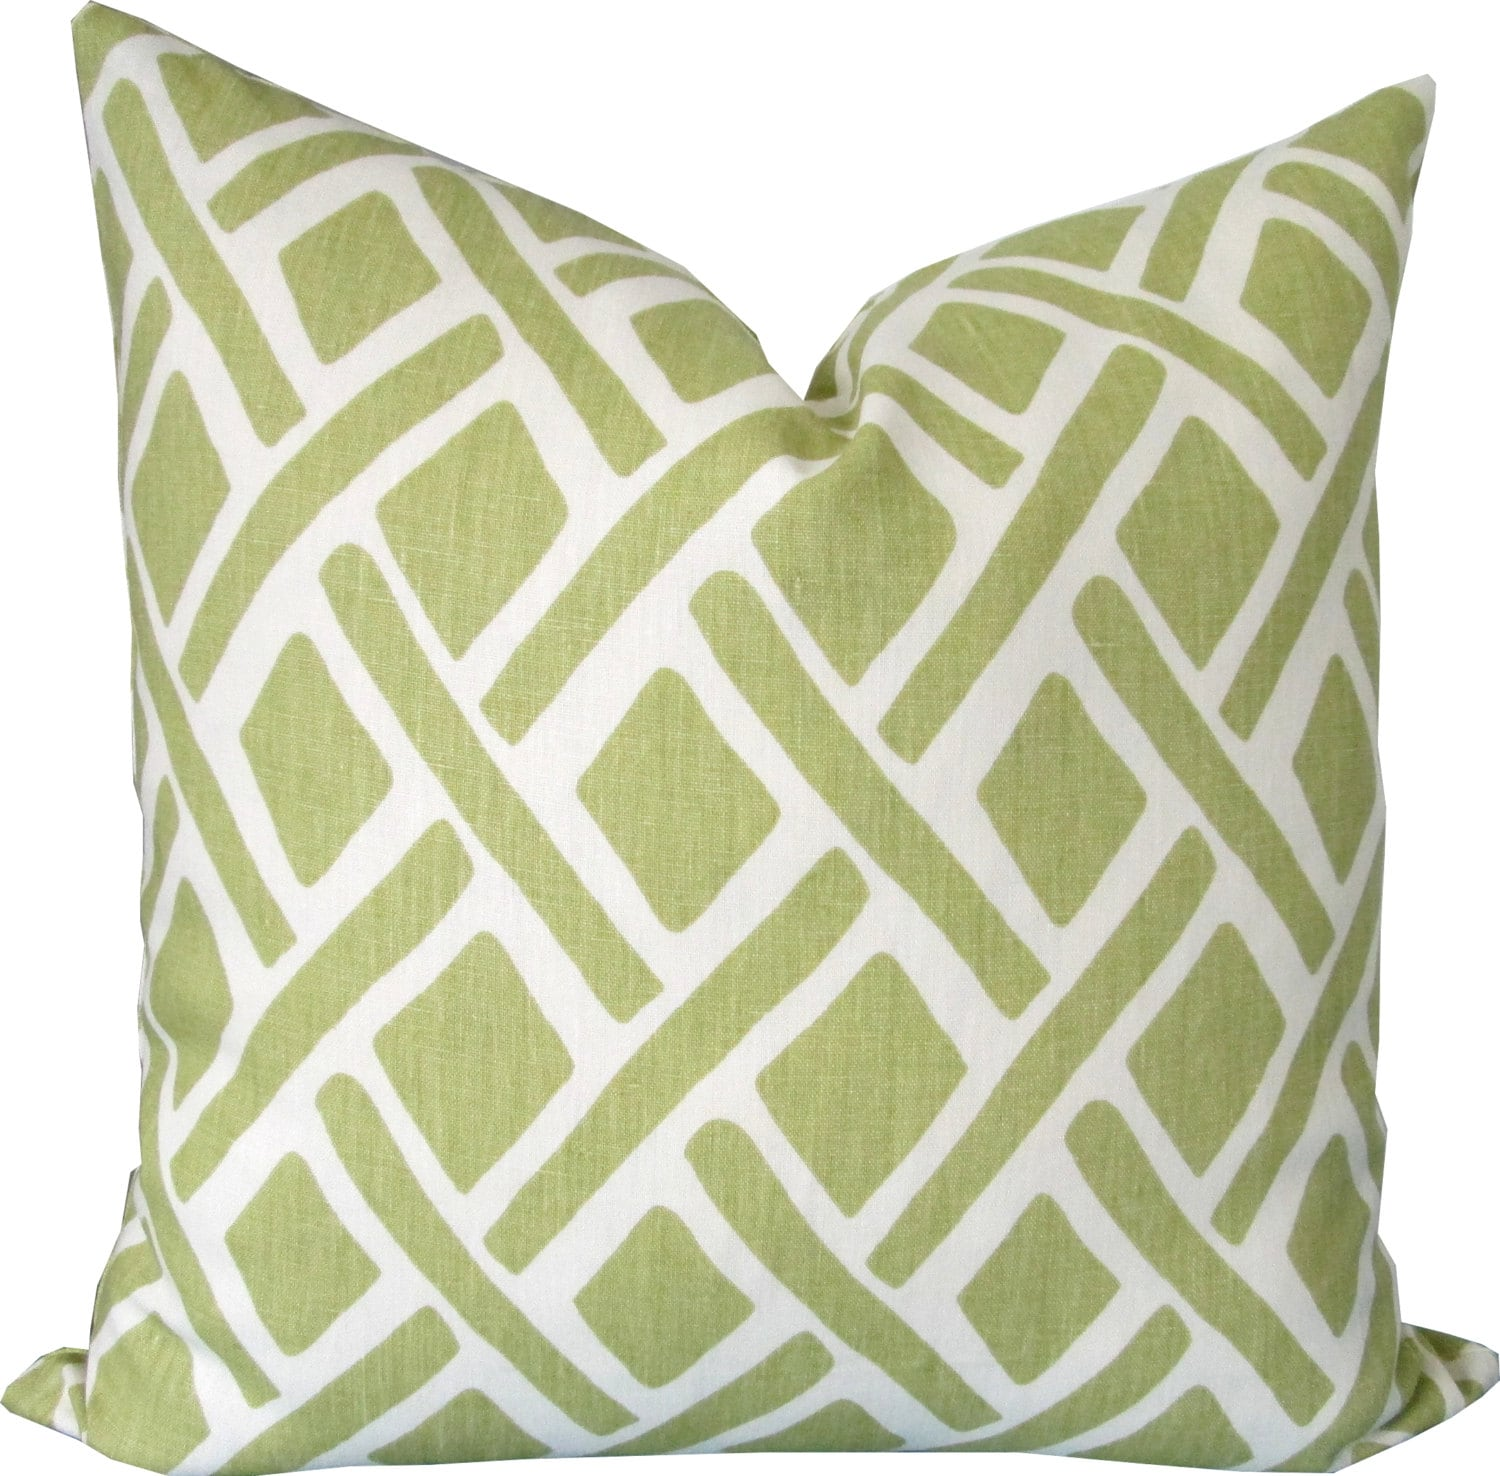 Green and Ivory Geometric-Decorative Pillow